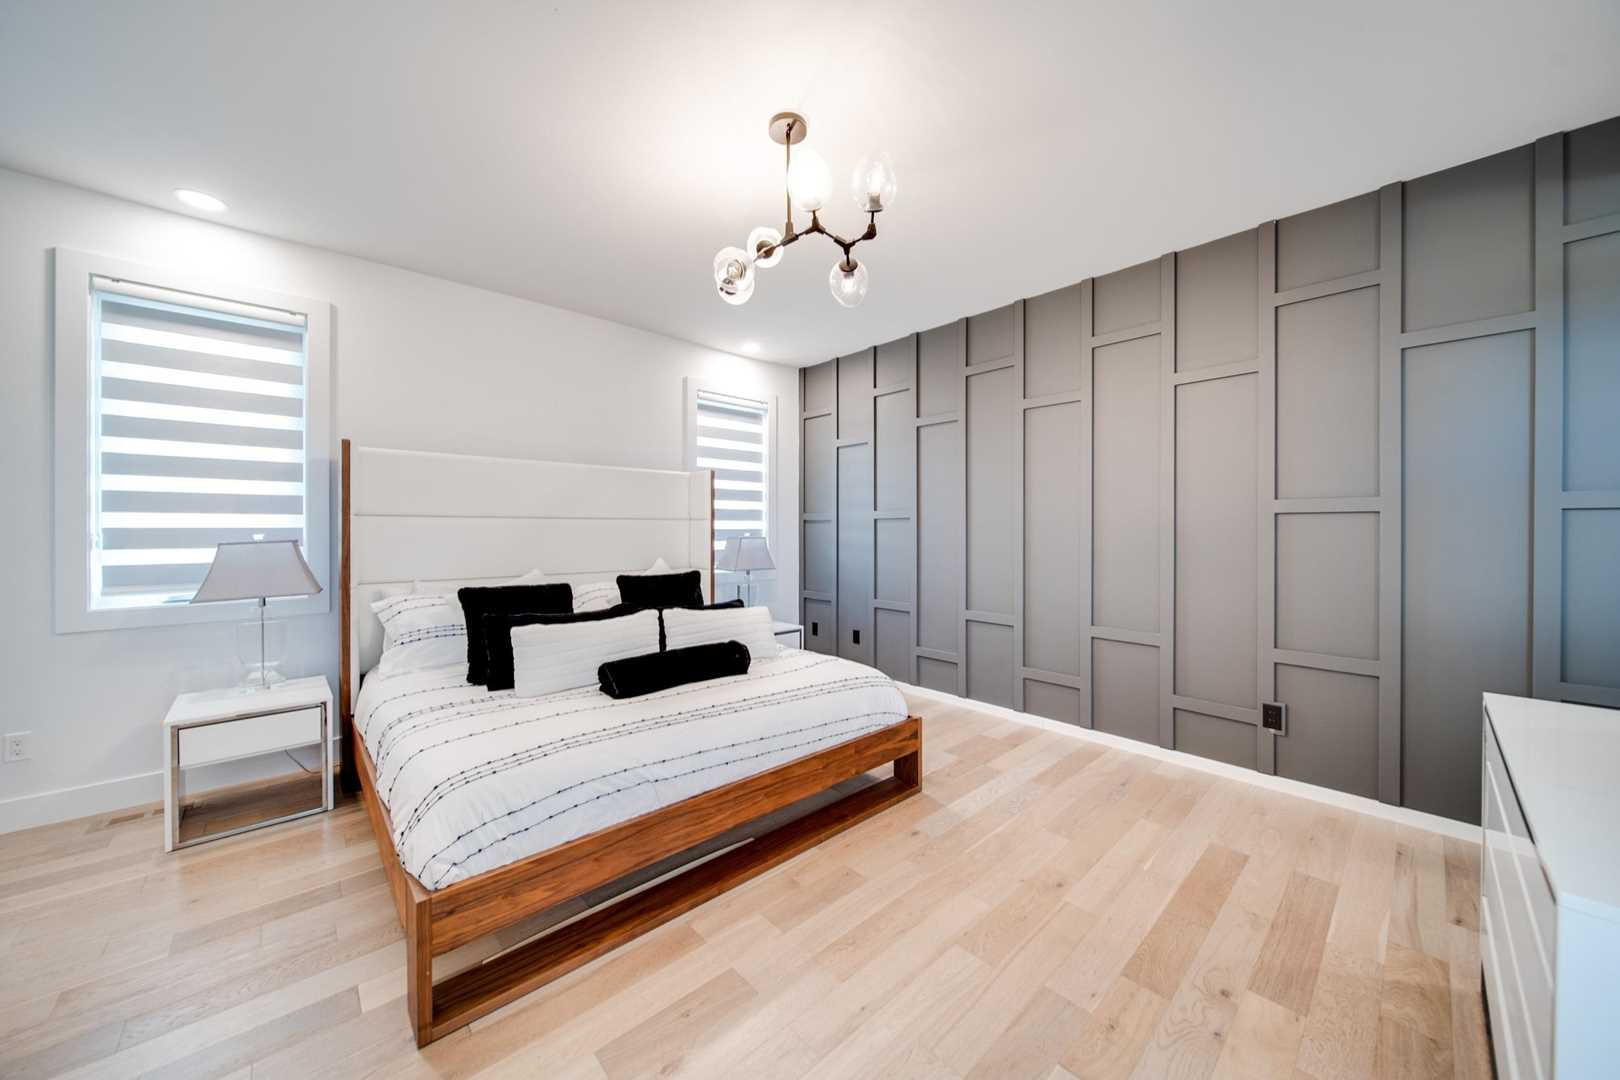 Master bedroom, white ceiling and walls, light hardwood floor; grey textured feature wall on right; geometric light above white bed with wood frame